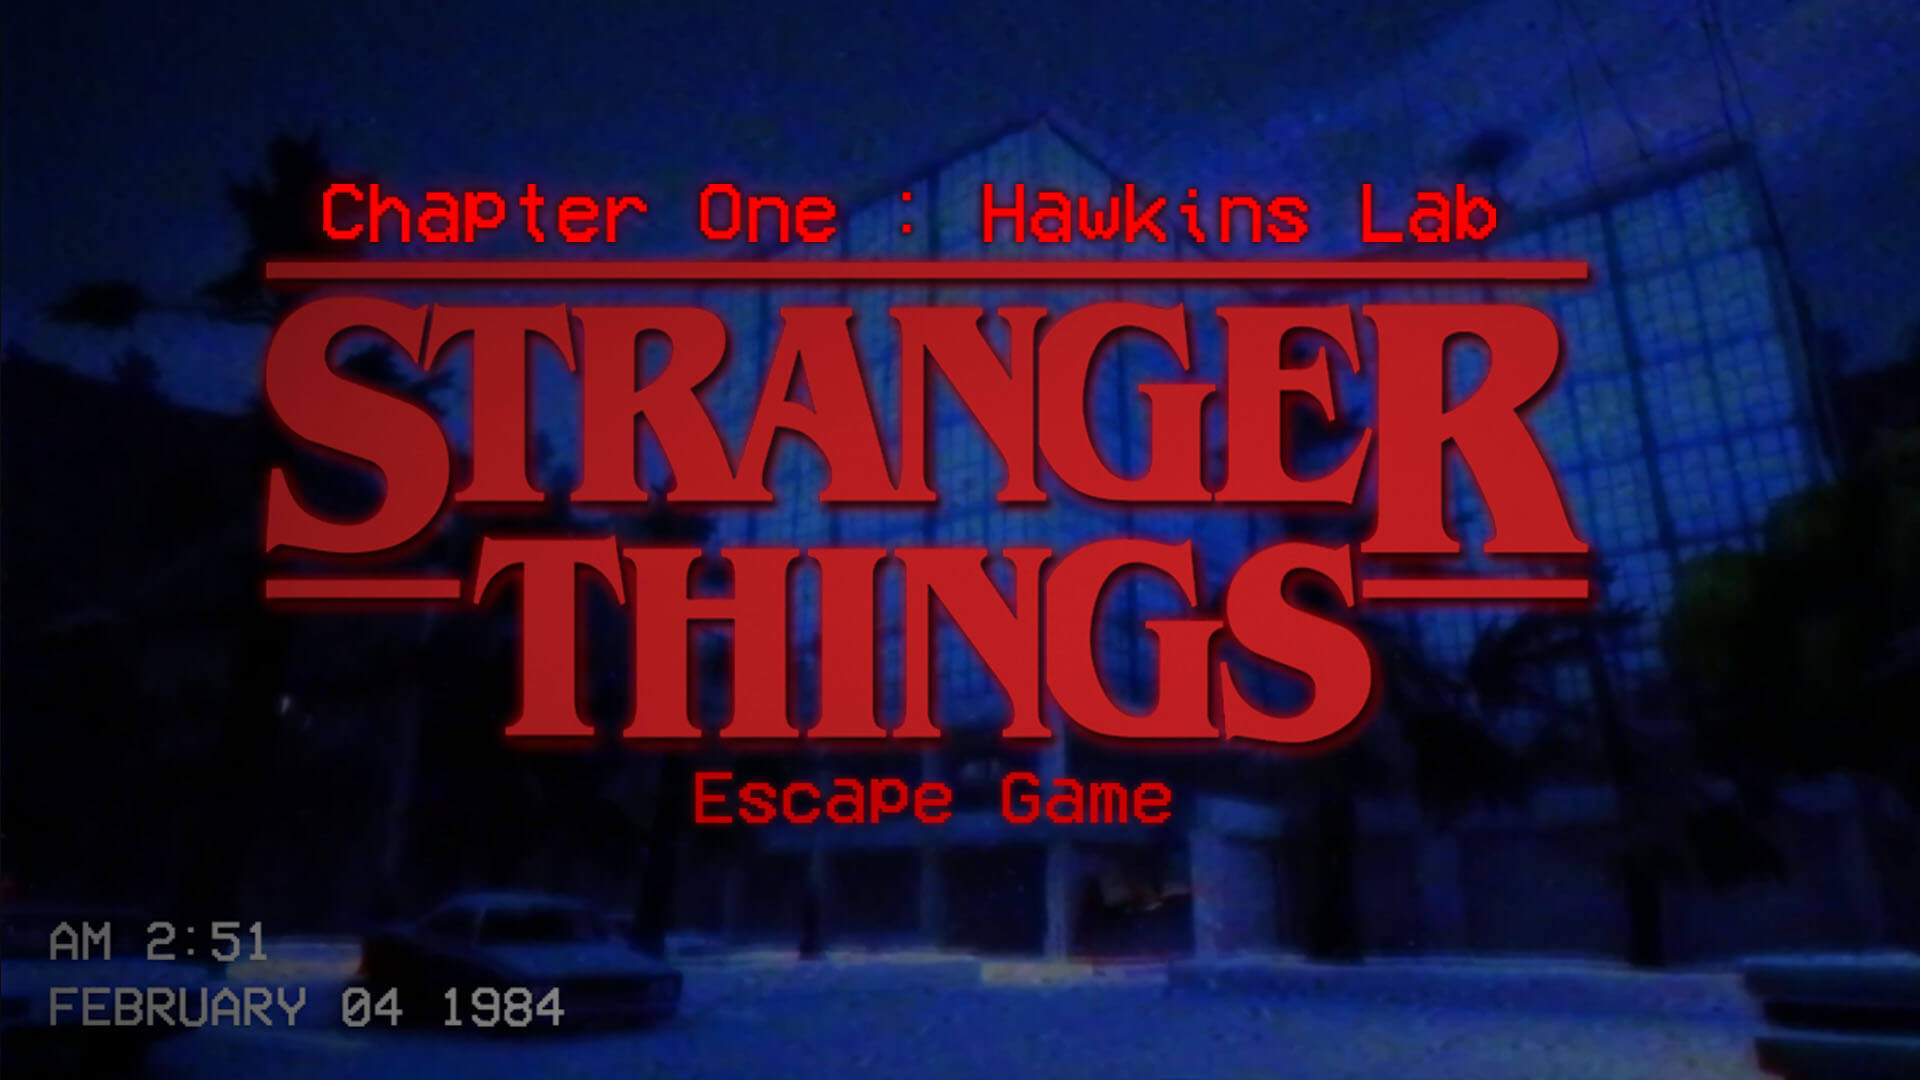 STRANGER THINGS [ESCAPEGAME] HAWKINS LAB